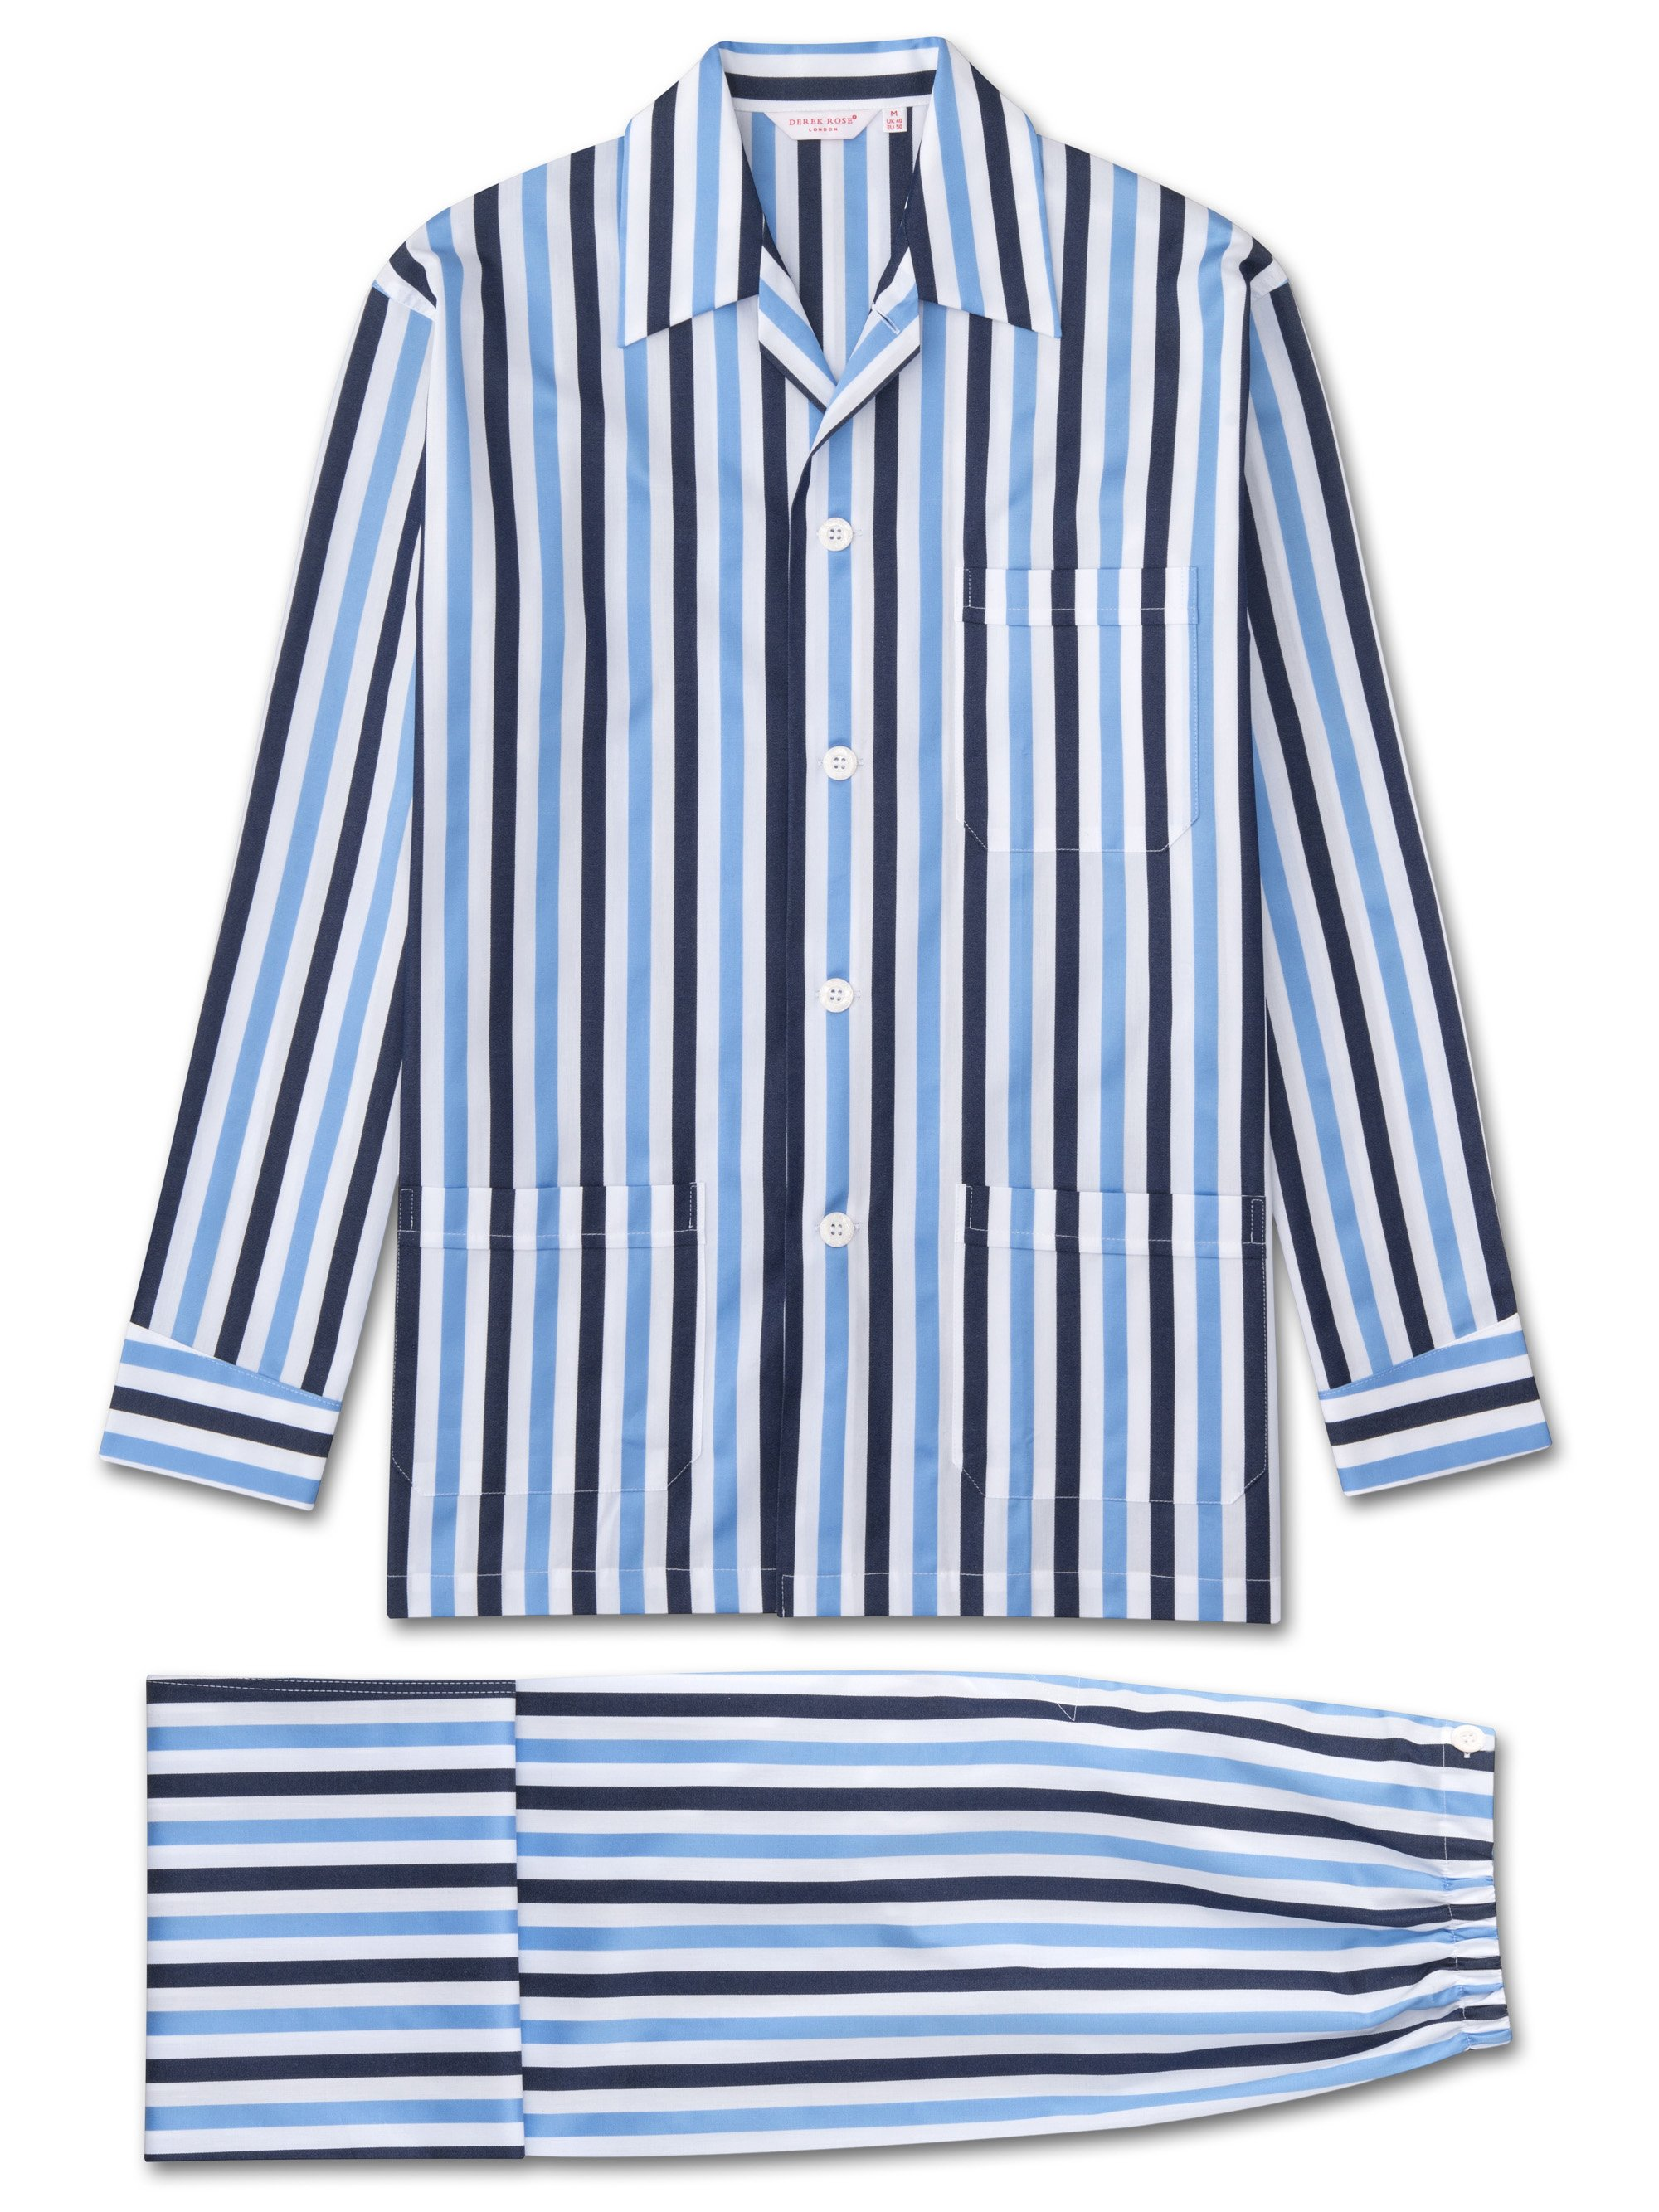 white, navy and blue striped men's cotton pyjama